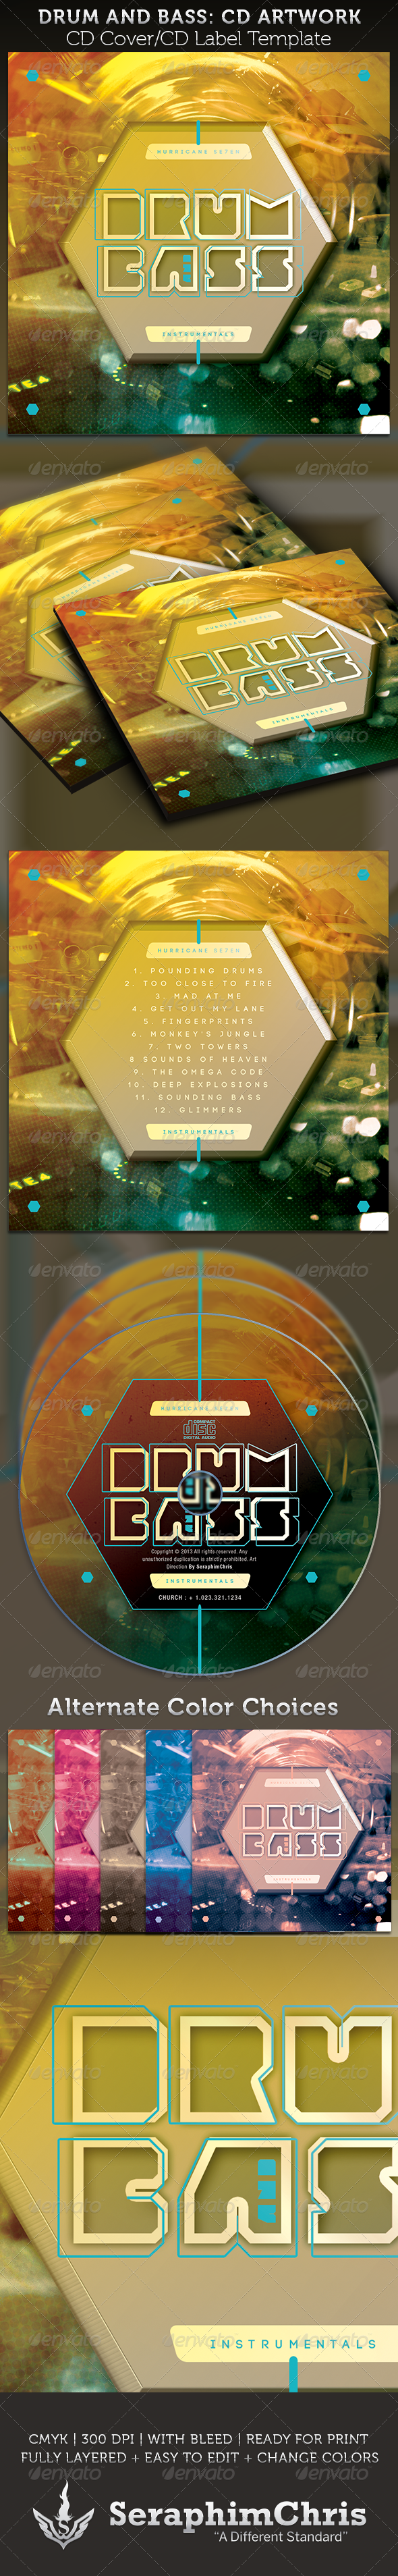 GraphicRiver Drum and Bass CD Cover Artwork Template 3856254